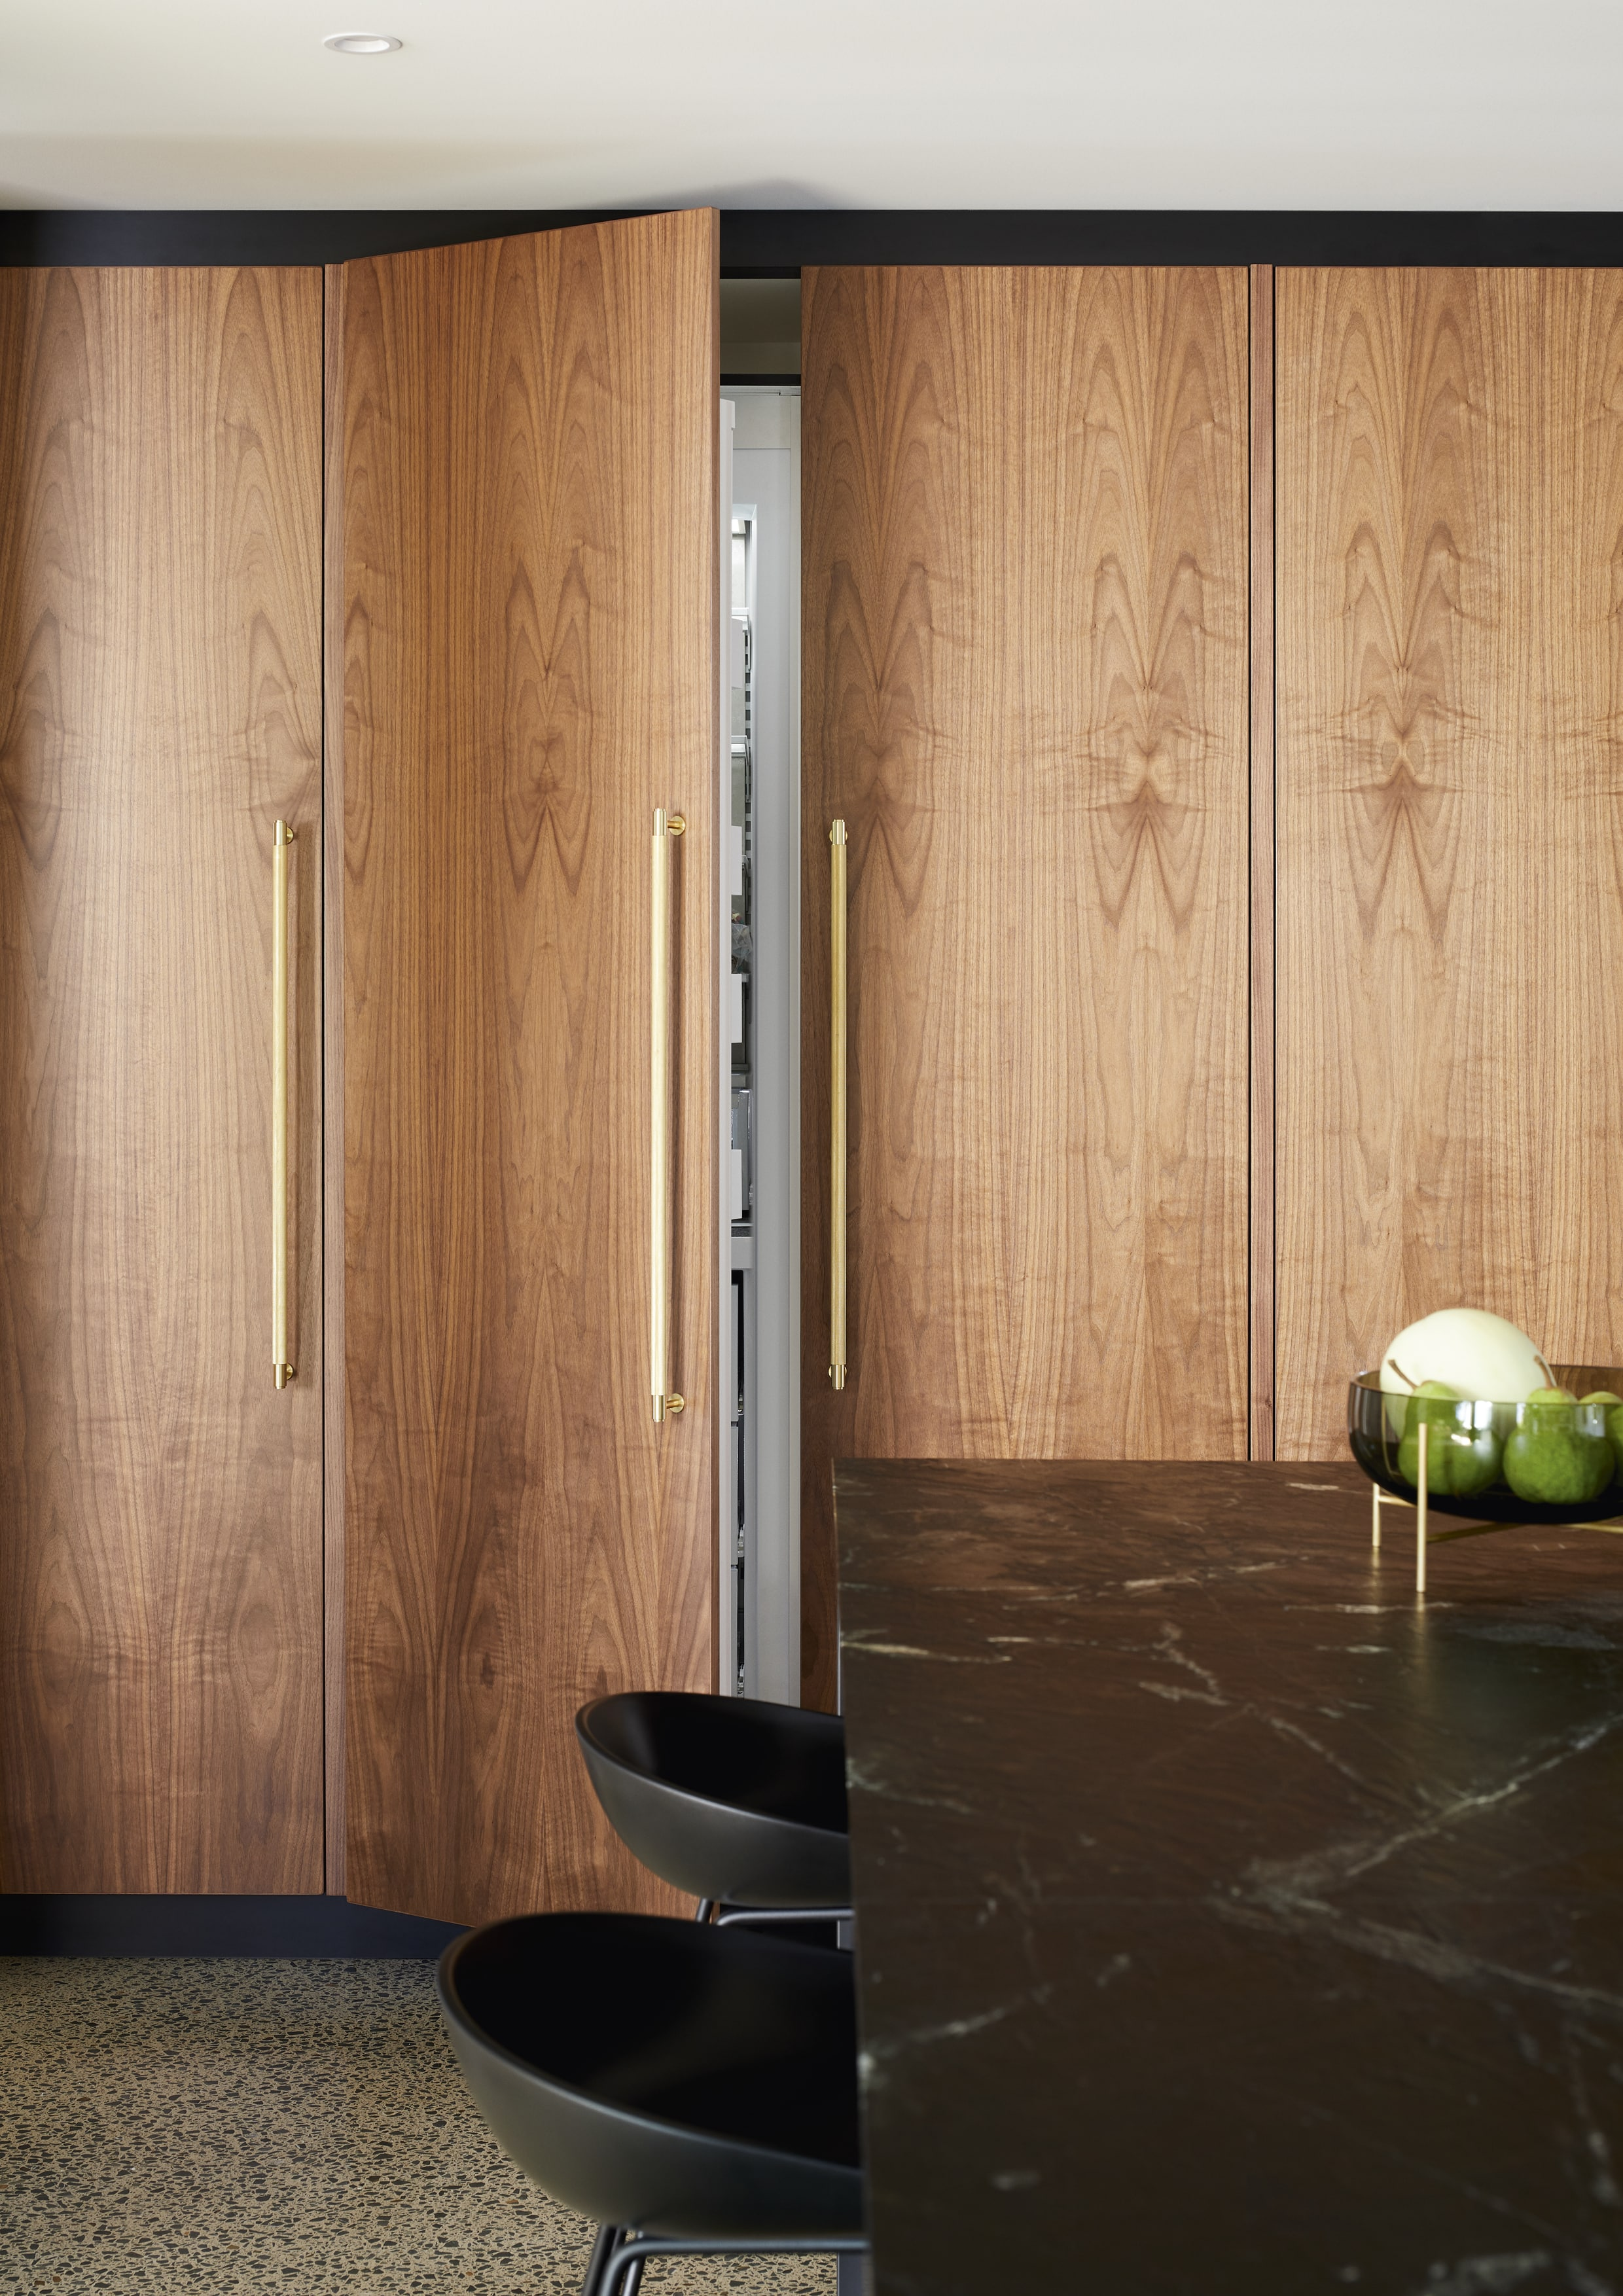 Gallery Of Column Refrigerators And Freezers By Fisher & Paykel Local Australian Design & Bespoke Interior Image 7